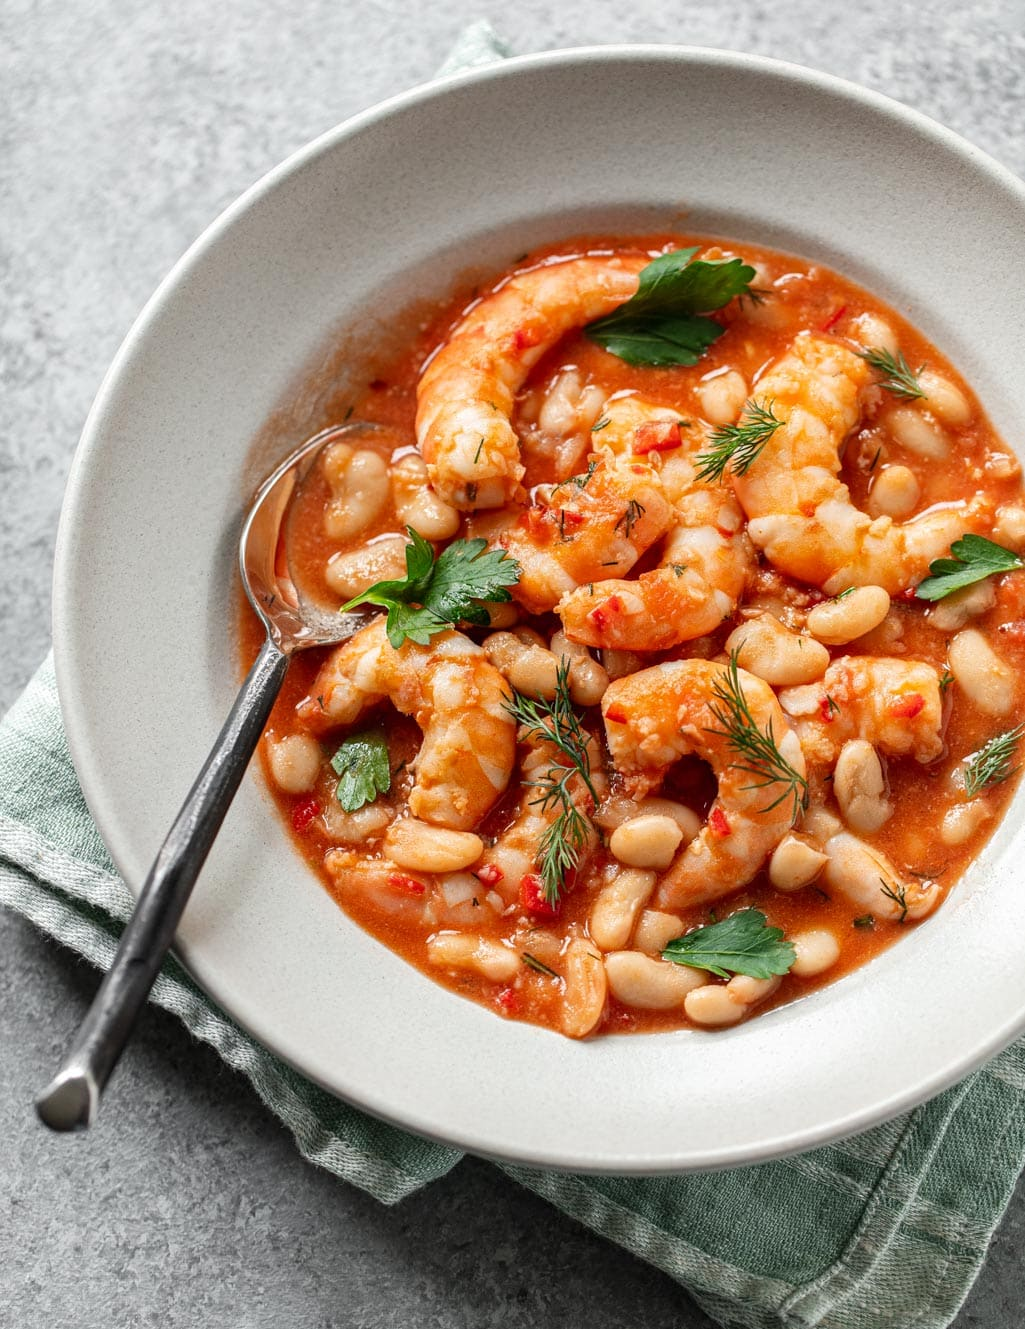 Spicy Garlic Shrimp with Rosemary White Beans